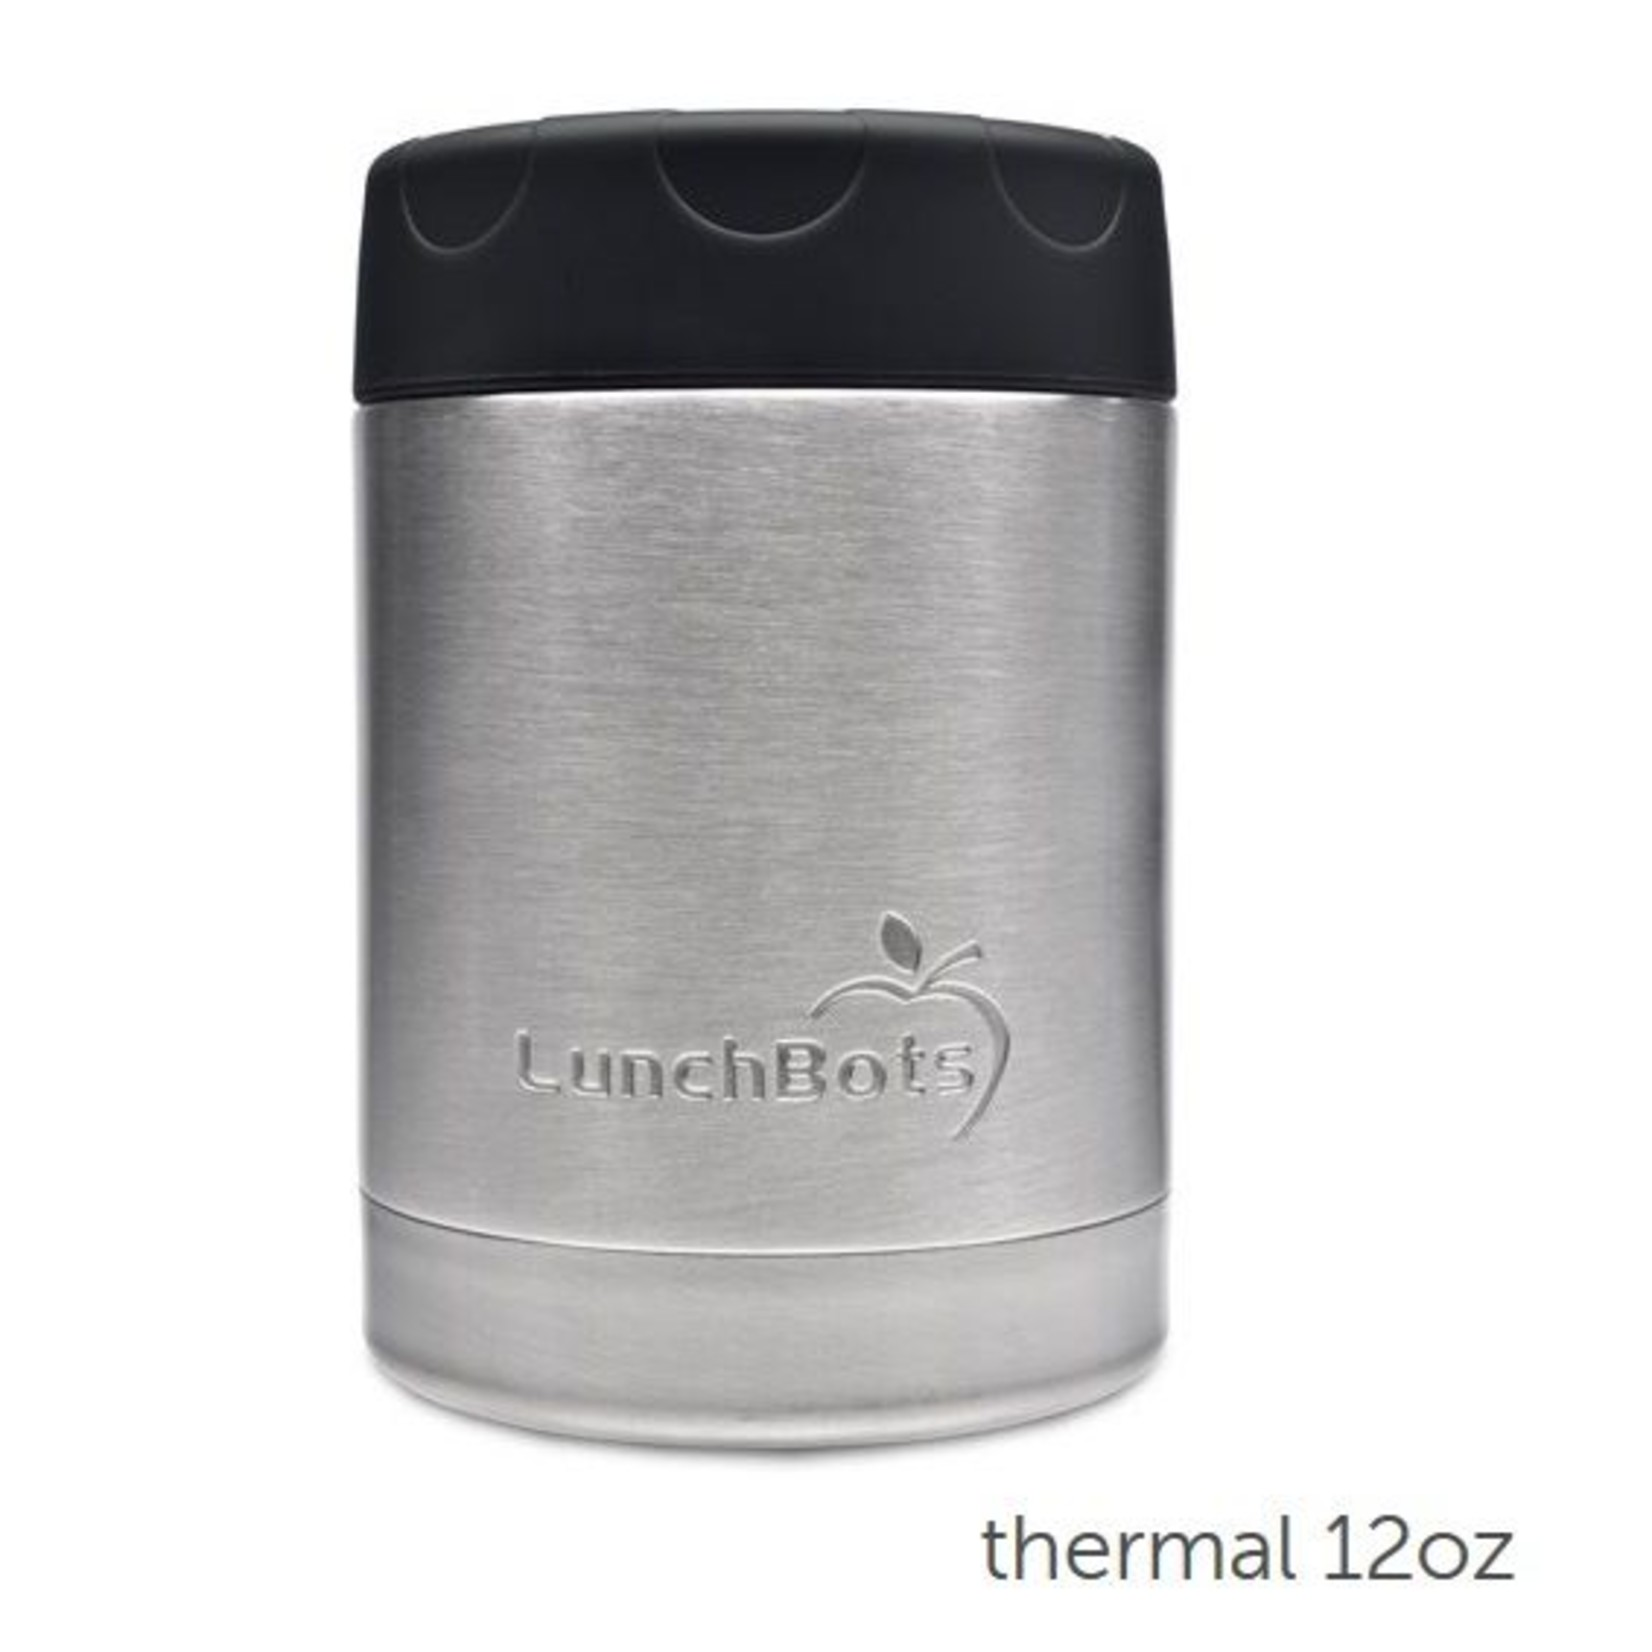 LunchBots Thermal Voedselcontainer - 350 ml